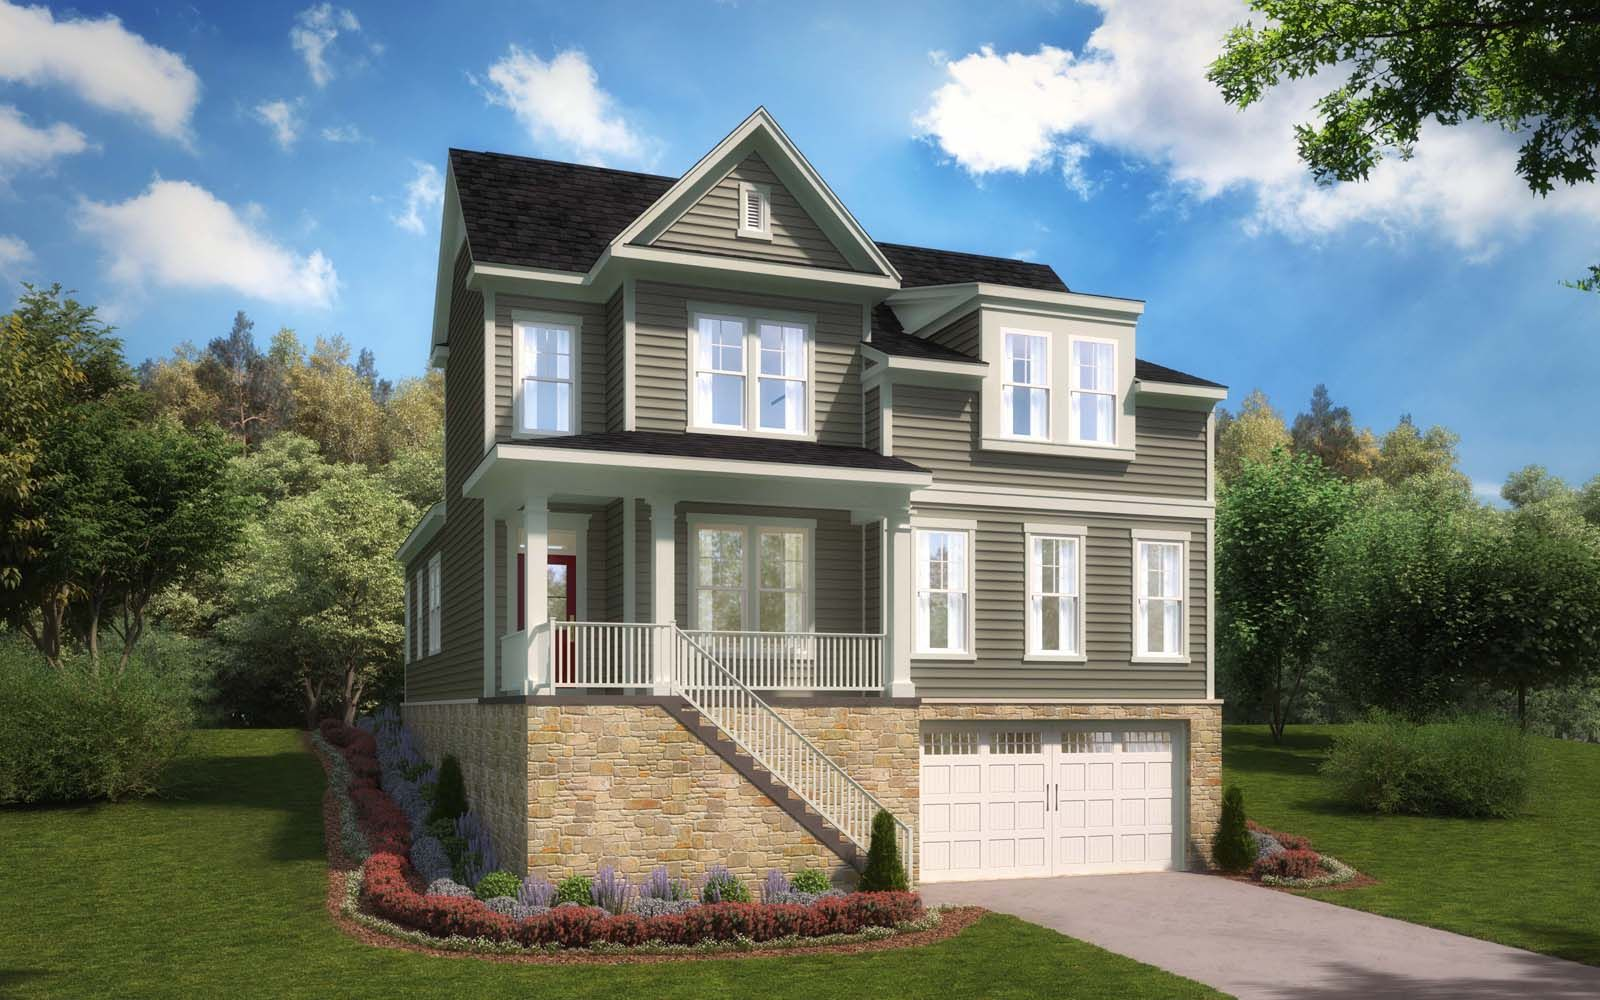 Exterior:Elevation 1 of the Townsend a home design by Brookfield Residential at Ridgeview